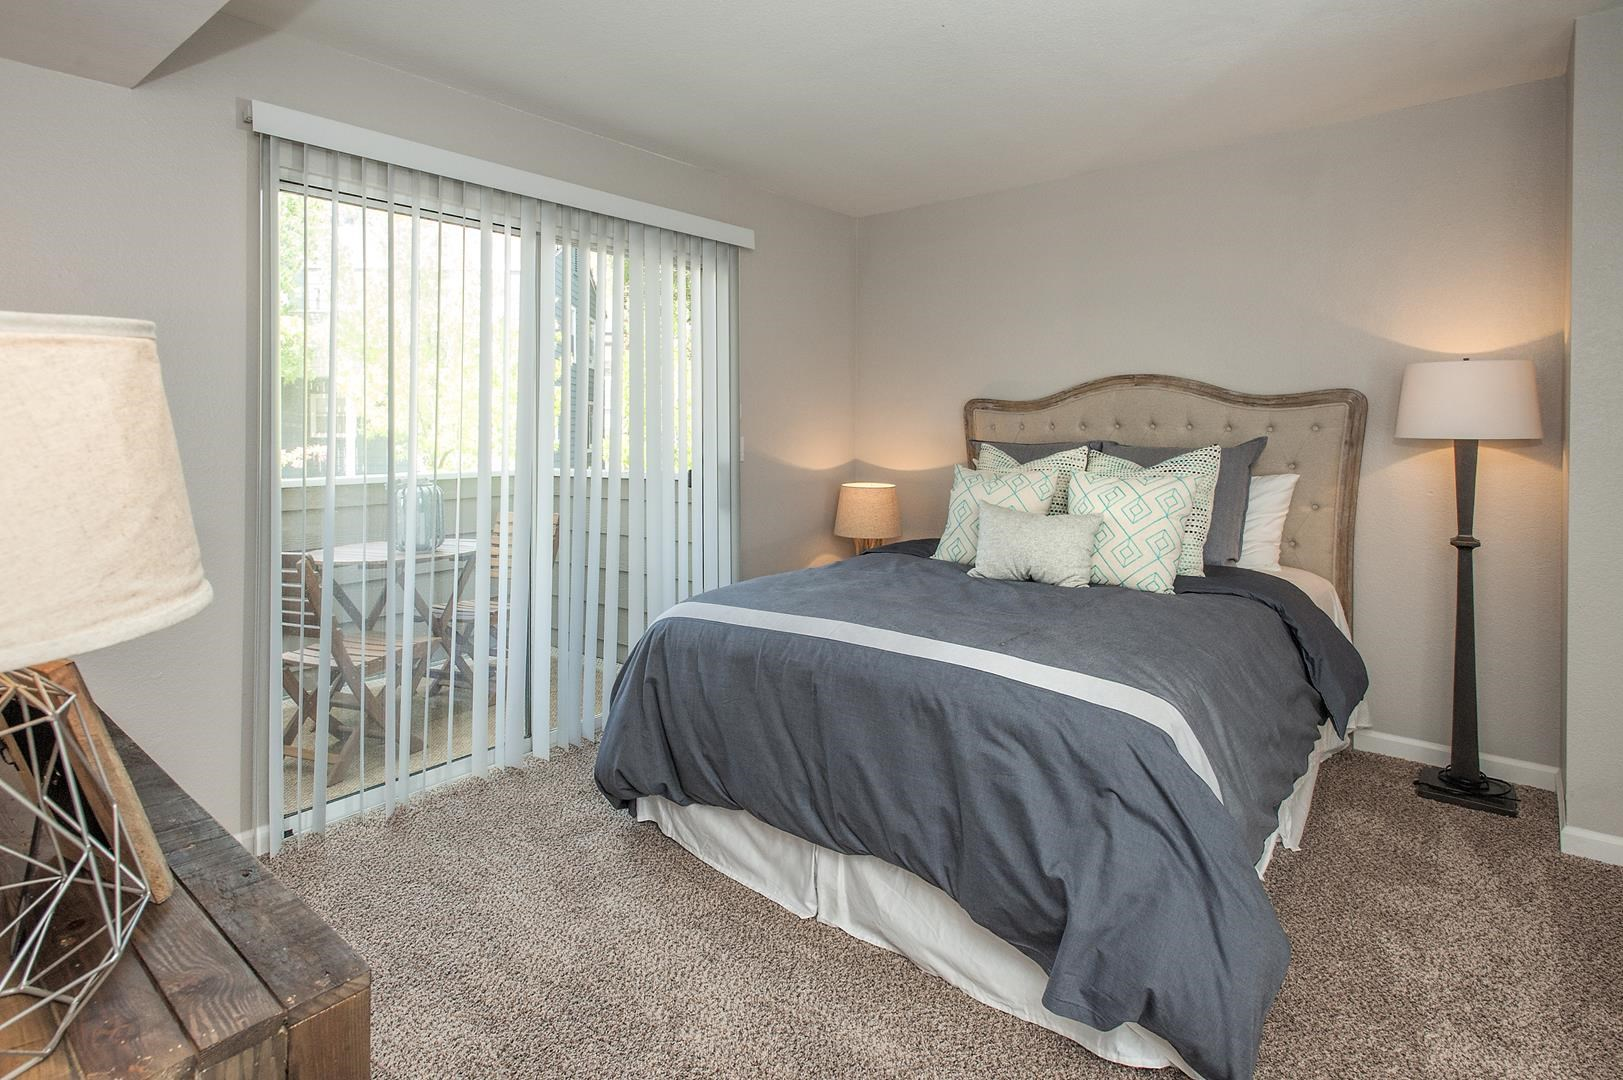 Two Bedroom Apartments in Fairfield CA-Waterscape Apartments Bedroom